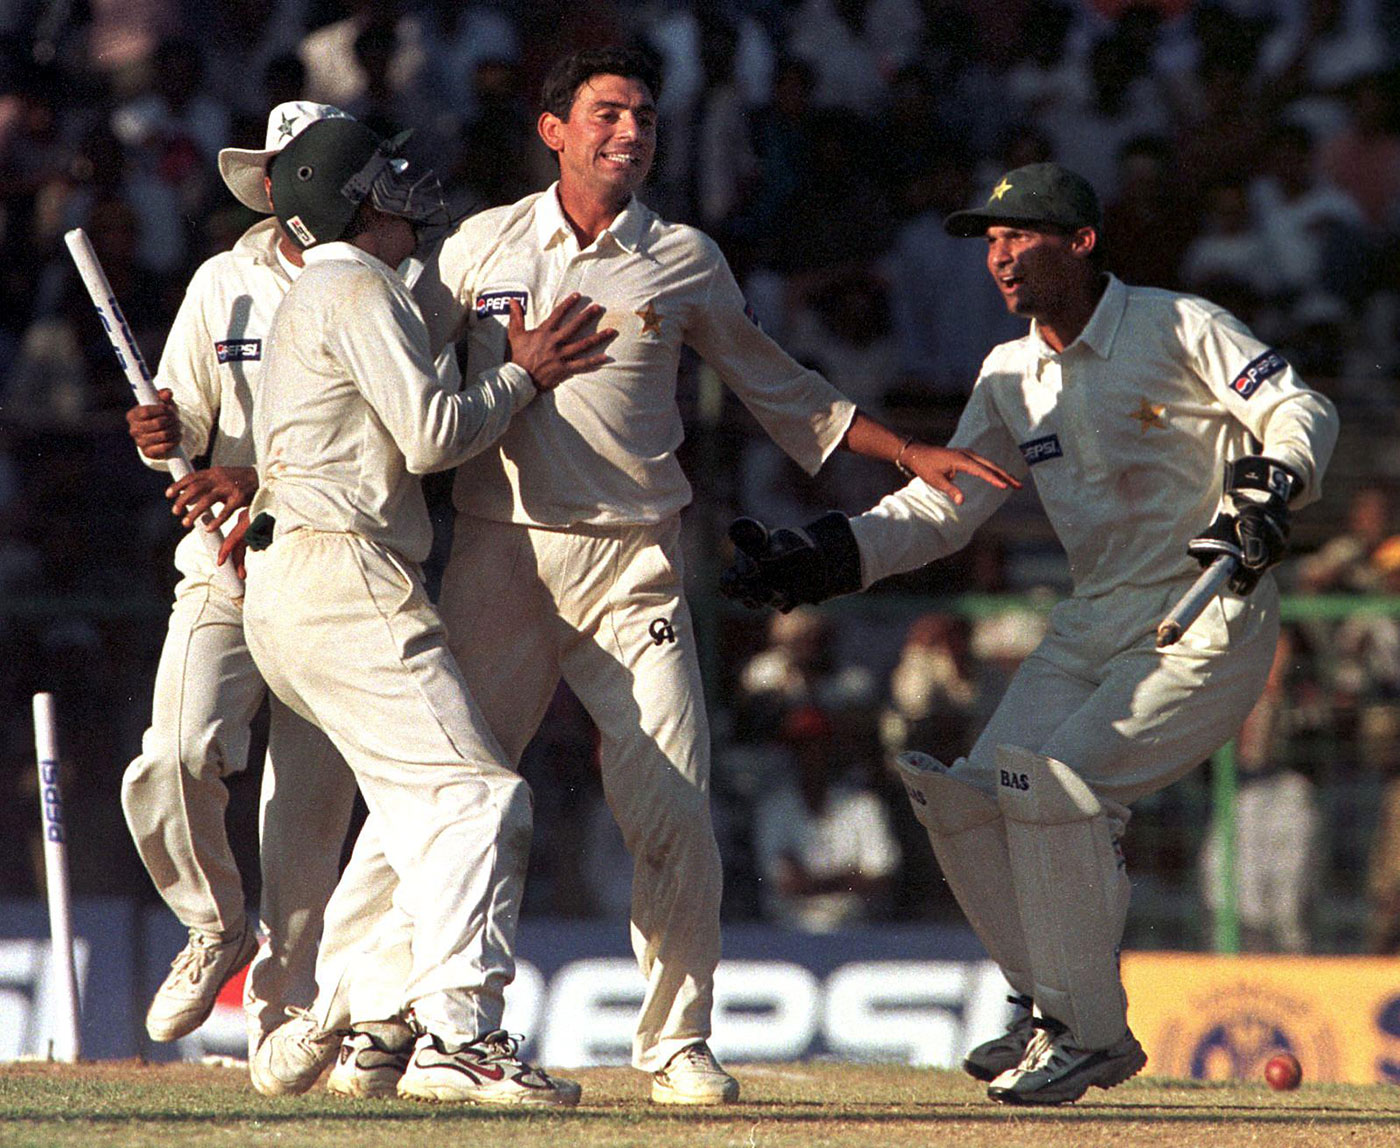 Saqlain Mushtaq celebrates the dismissal of the final Indian batsman - Javagal Srinath